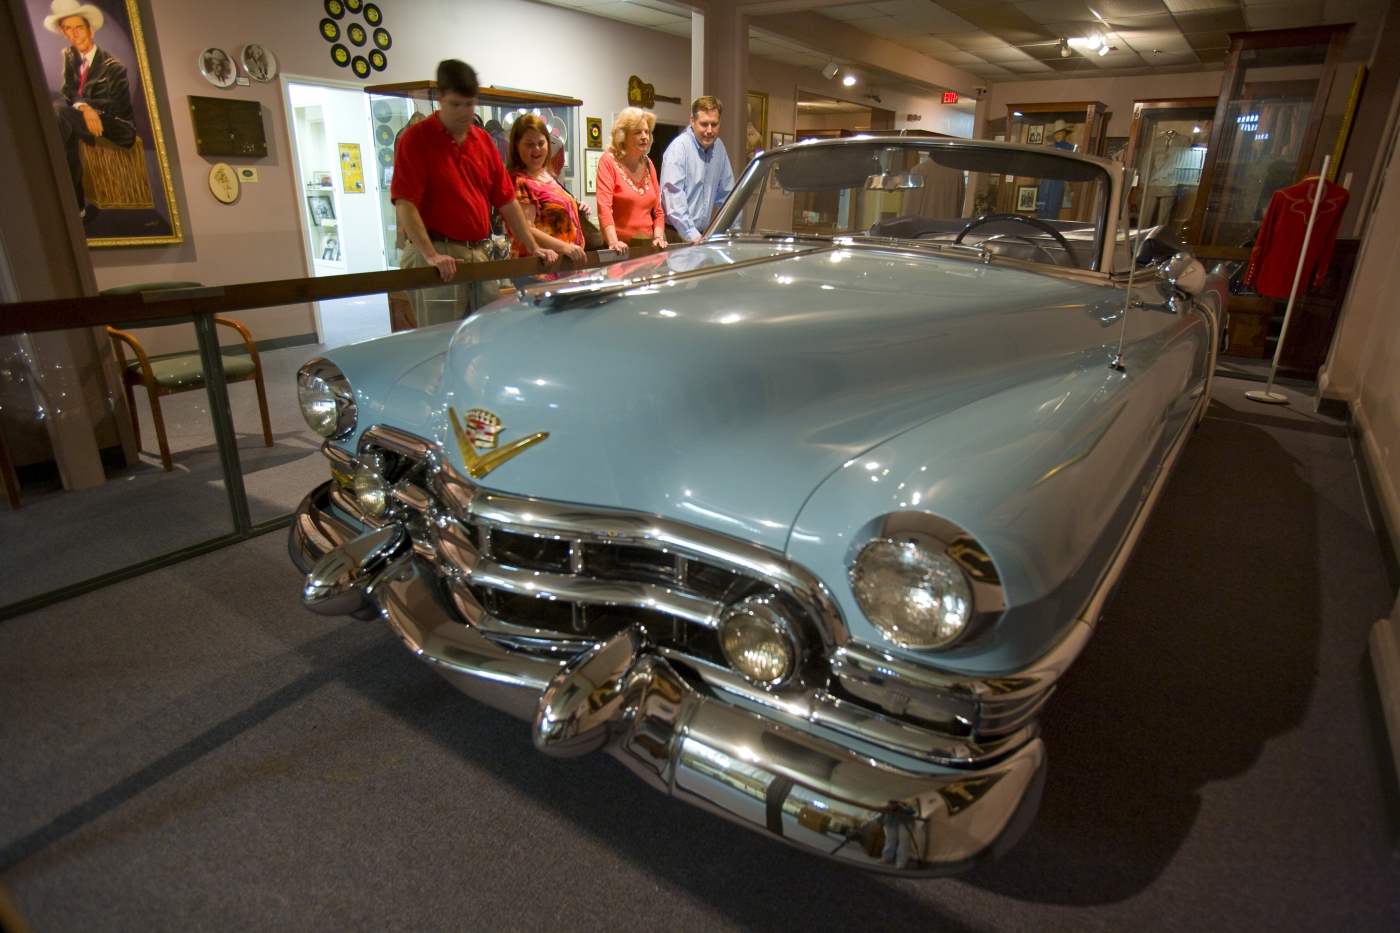 Legendary musician Hank Williams began his music career in Montgomery. His blue Cadillac is one of many artifacts you can see at the Hank Williams Museum.